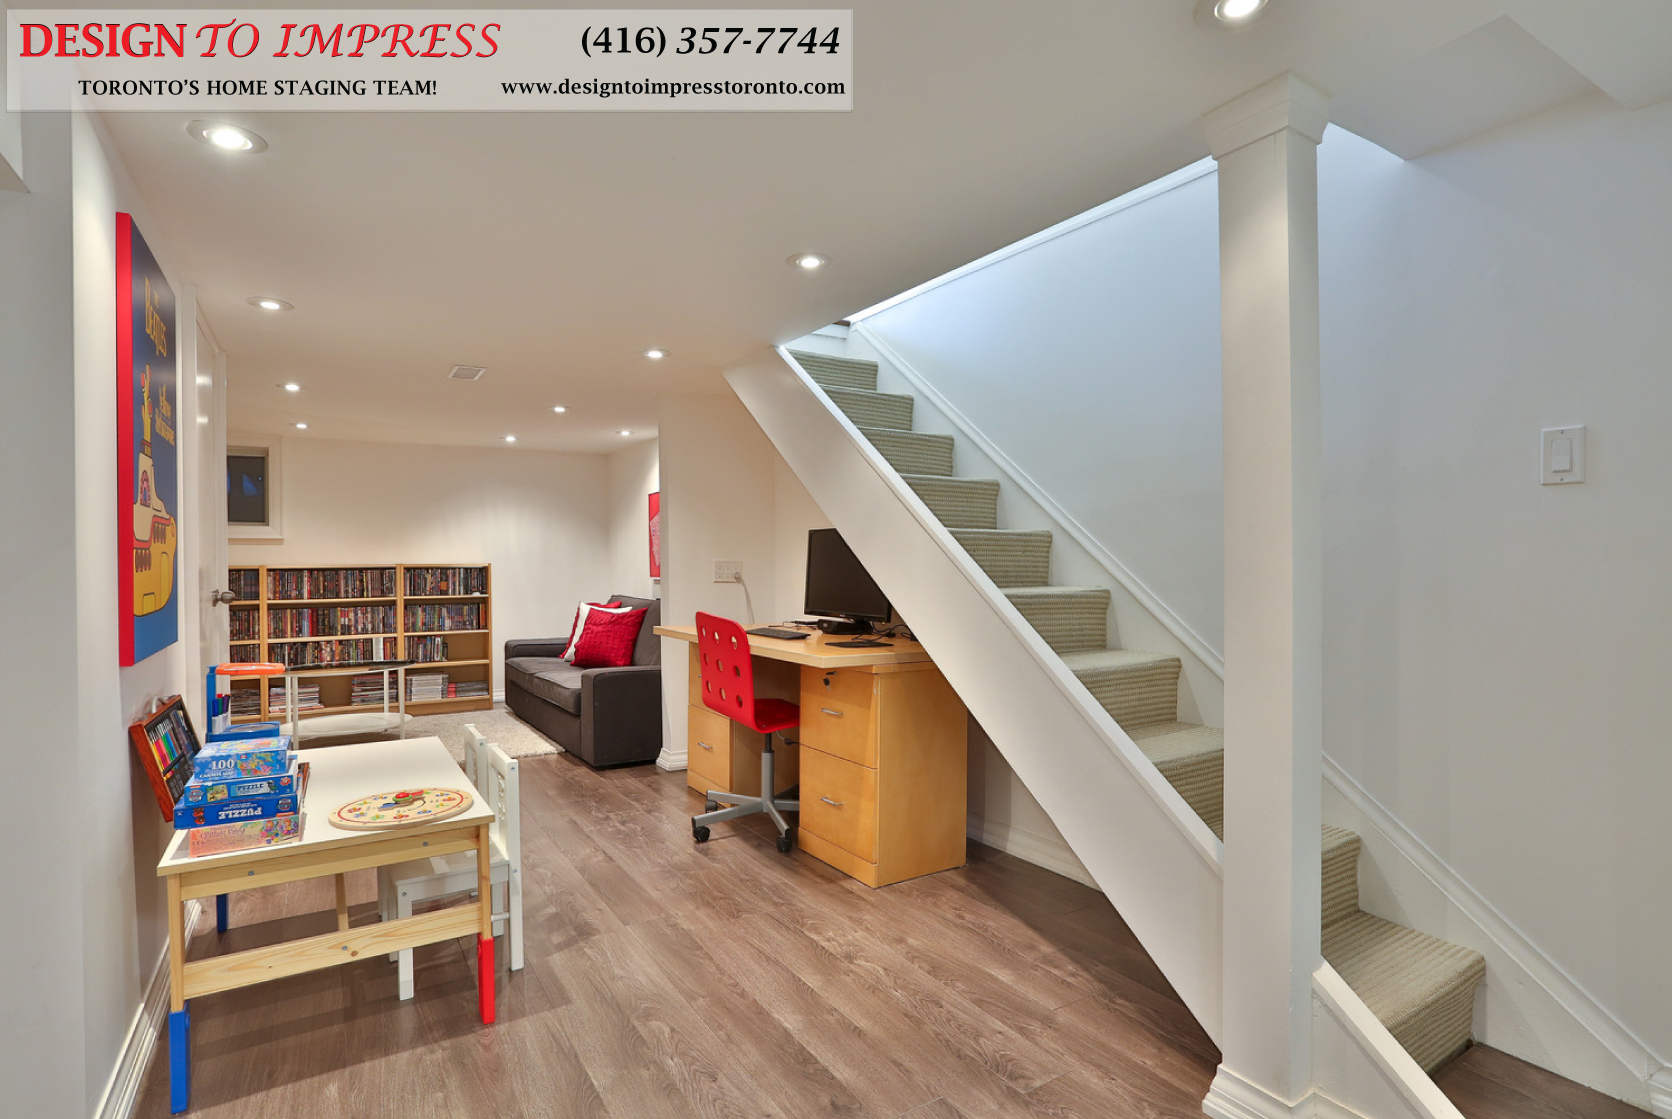 Basement, 291 Springdale, Toronto Home Staging